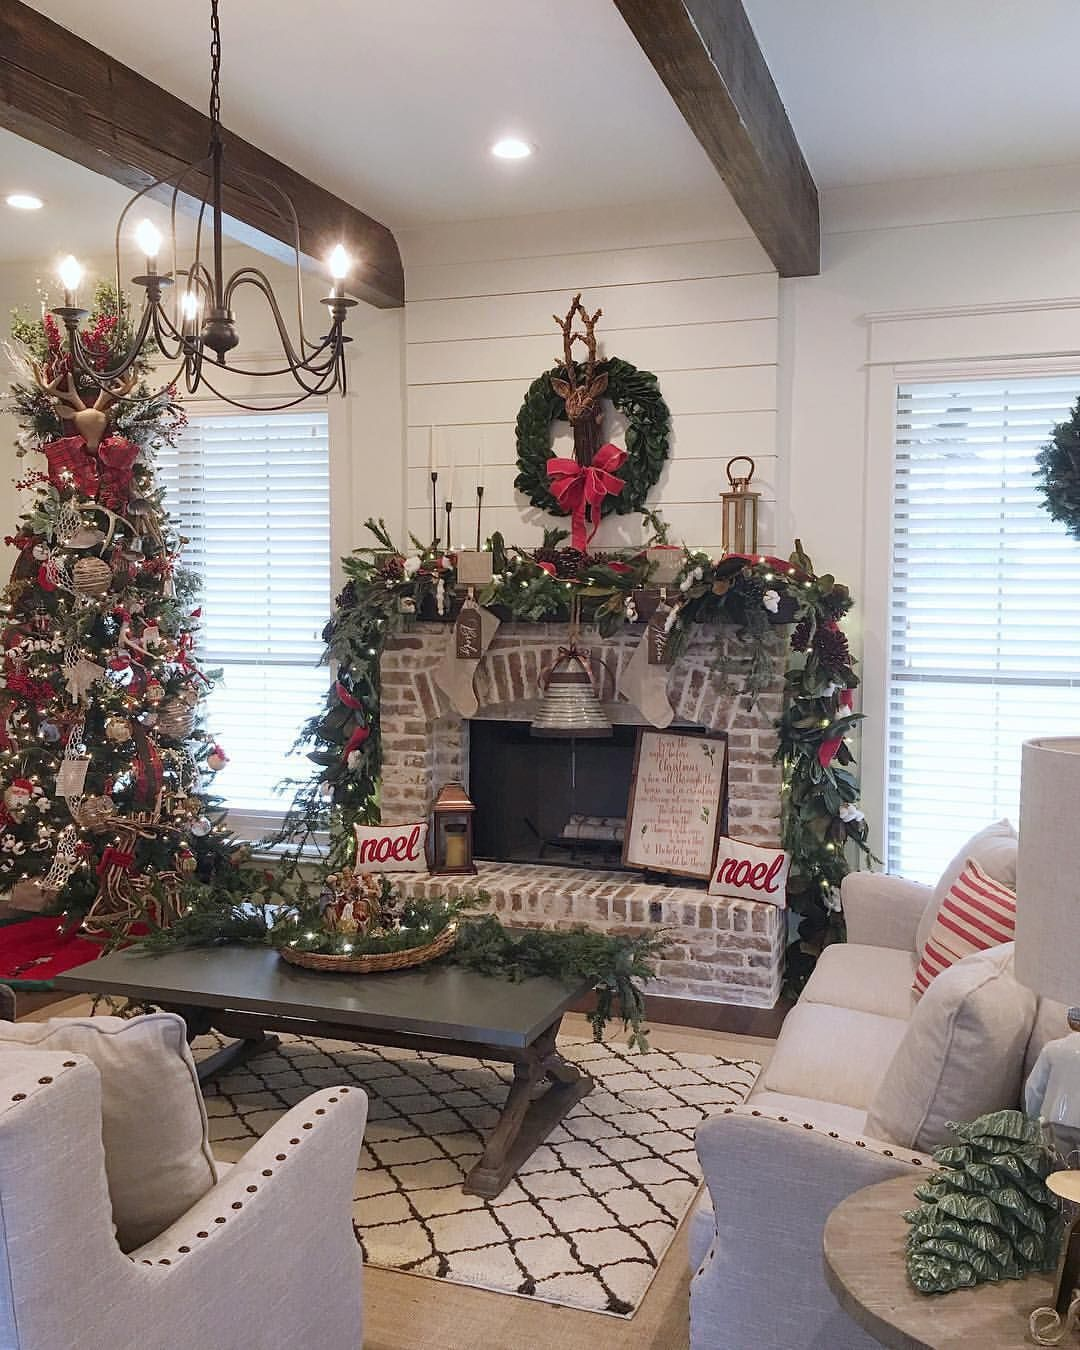 Mantel Goals! @the_refinedfarmhouse's Decked Out Fireplace